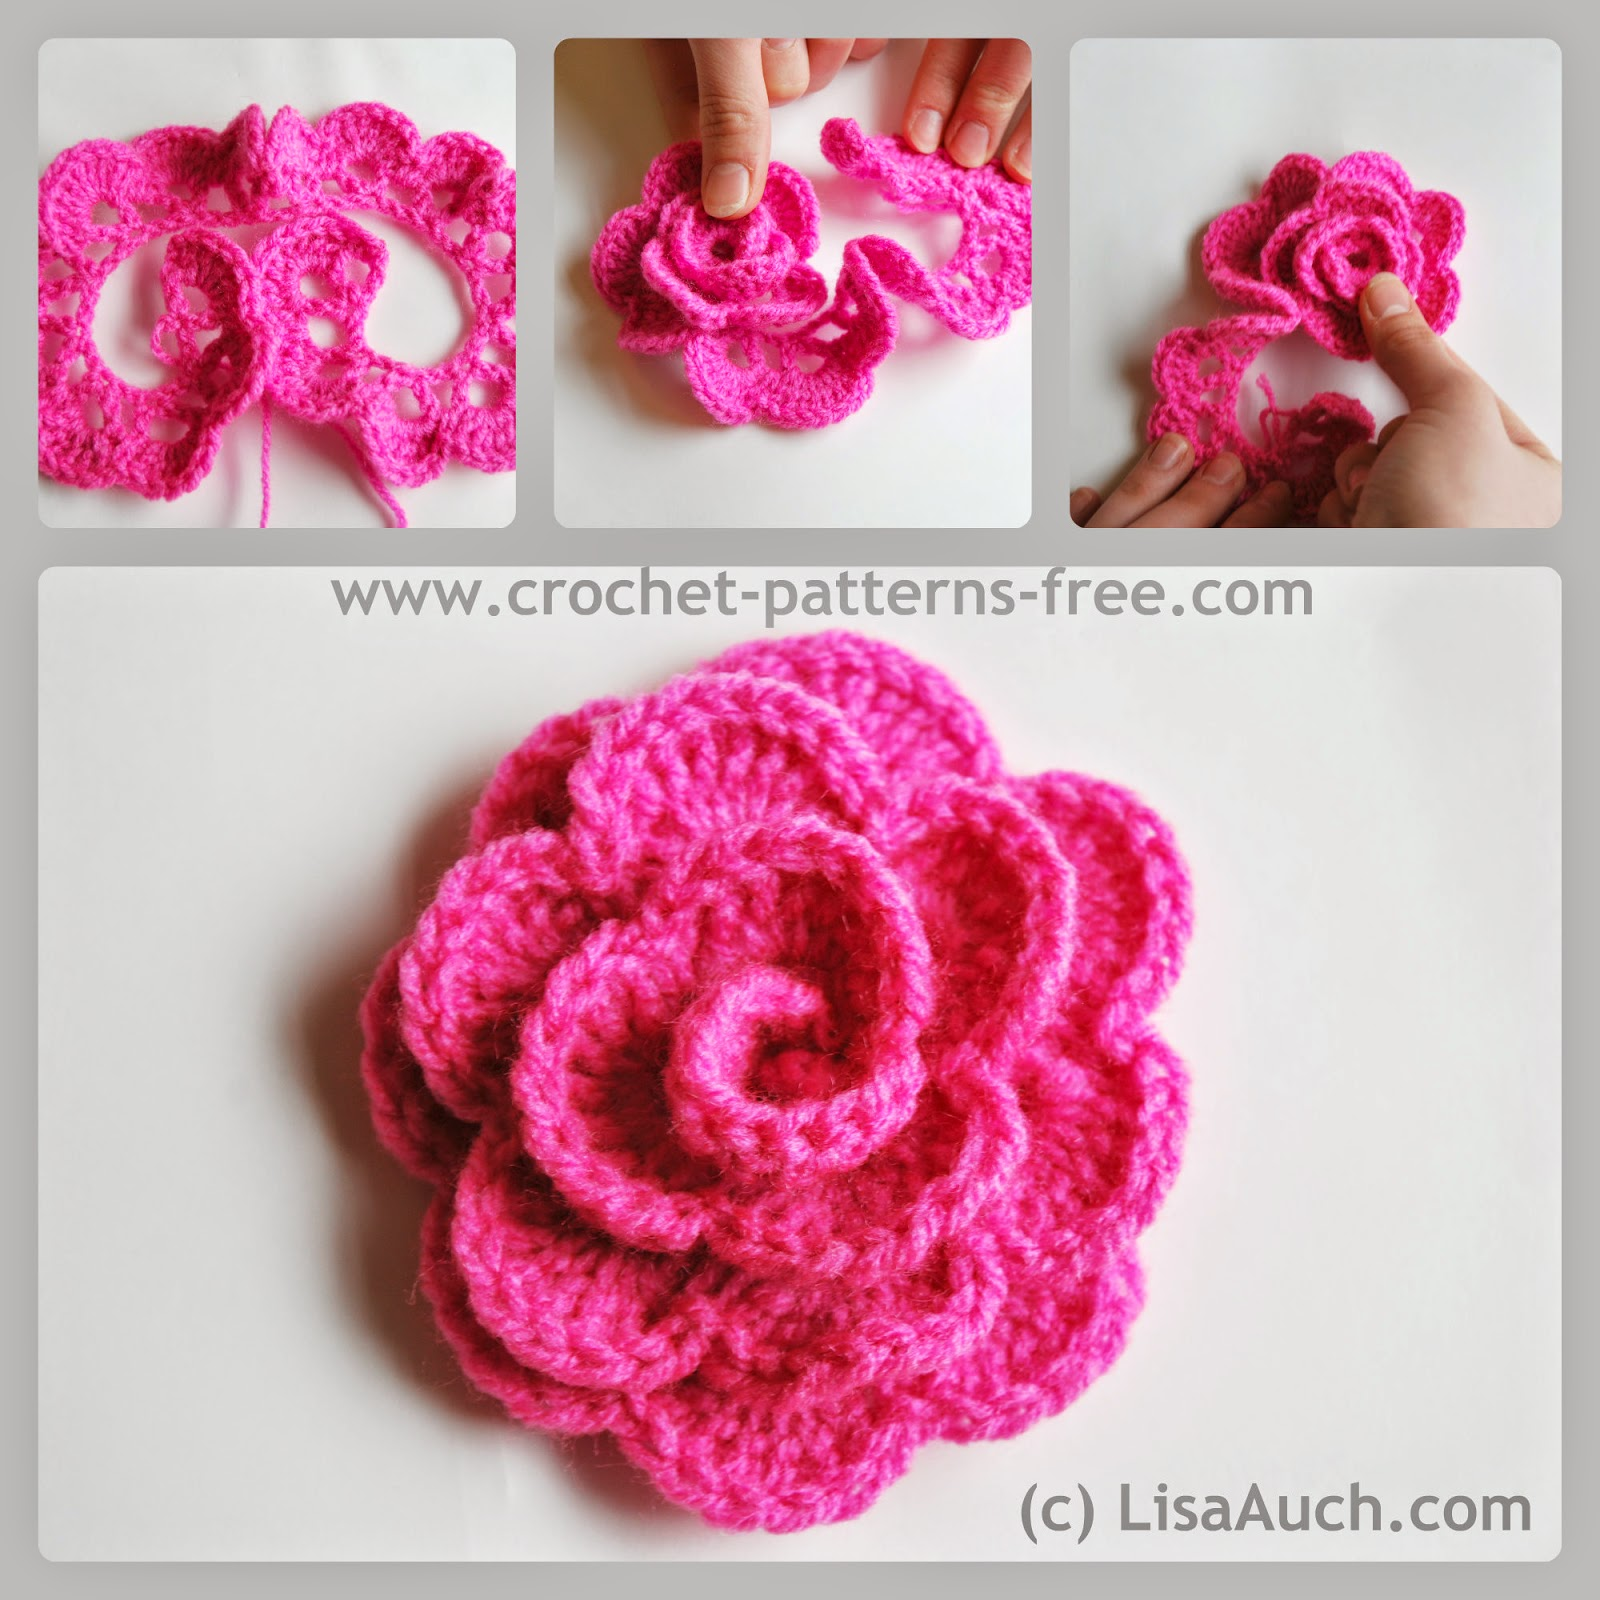 Free Crochet Pattern Simple Flower : Rose Hip Blog Crochet Flower Pattern 2016 Car Release Date